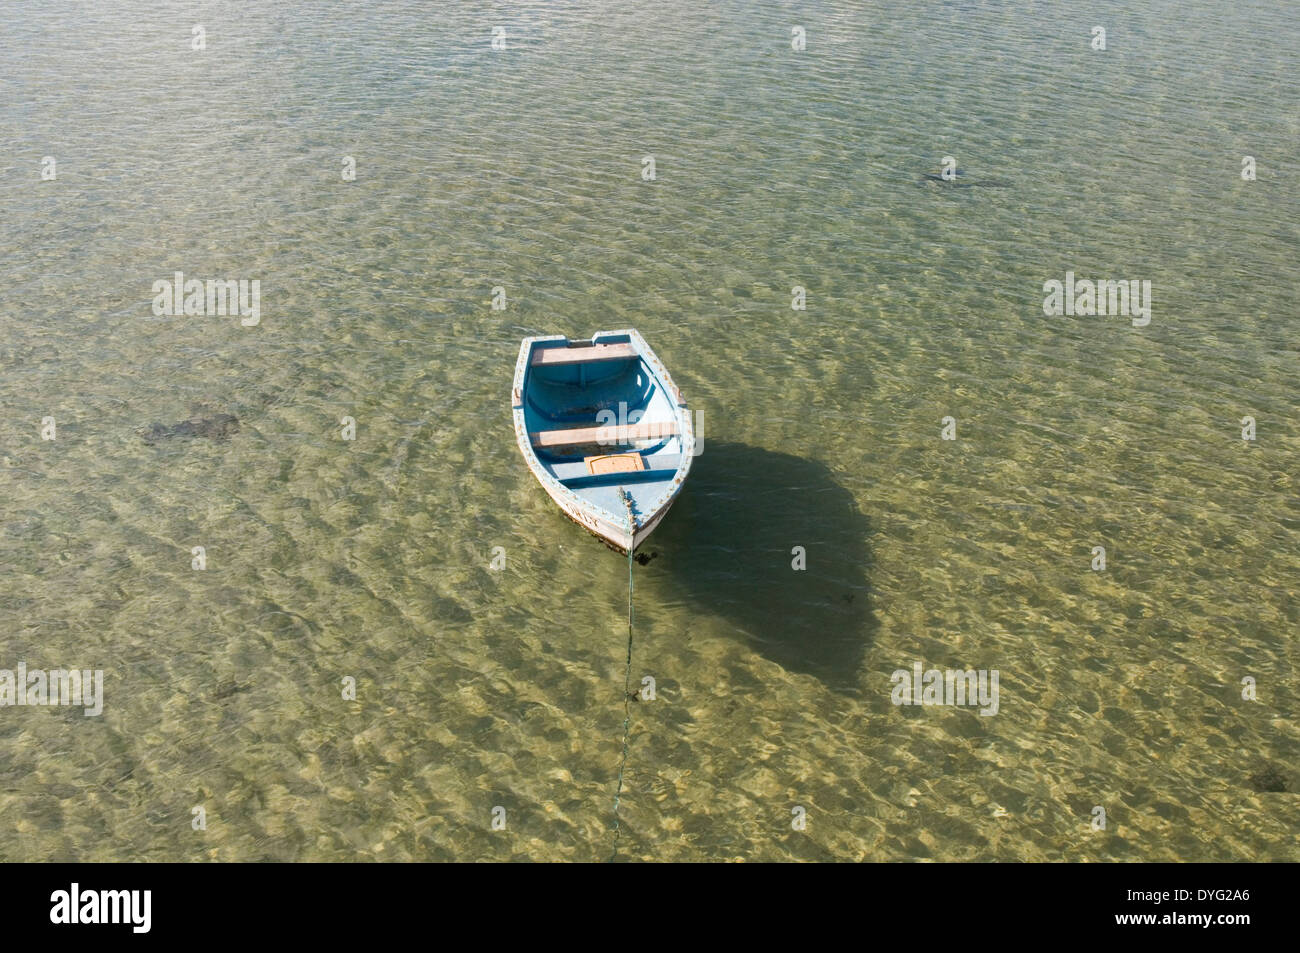 drift away stress destress de rowing boat in carm water waters small little peace and quiet float floating shallow drifting - Stock Image